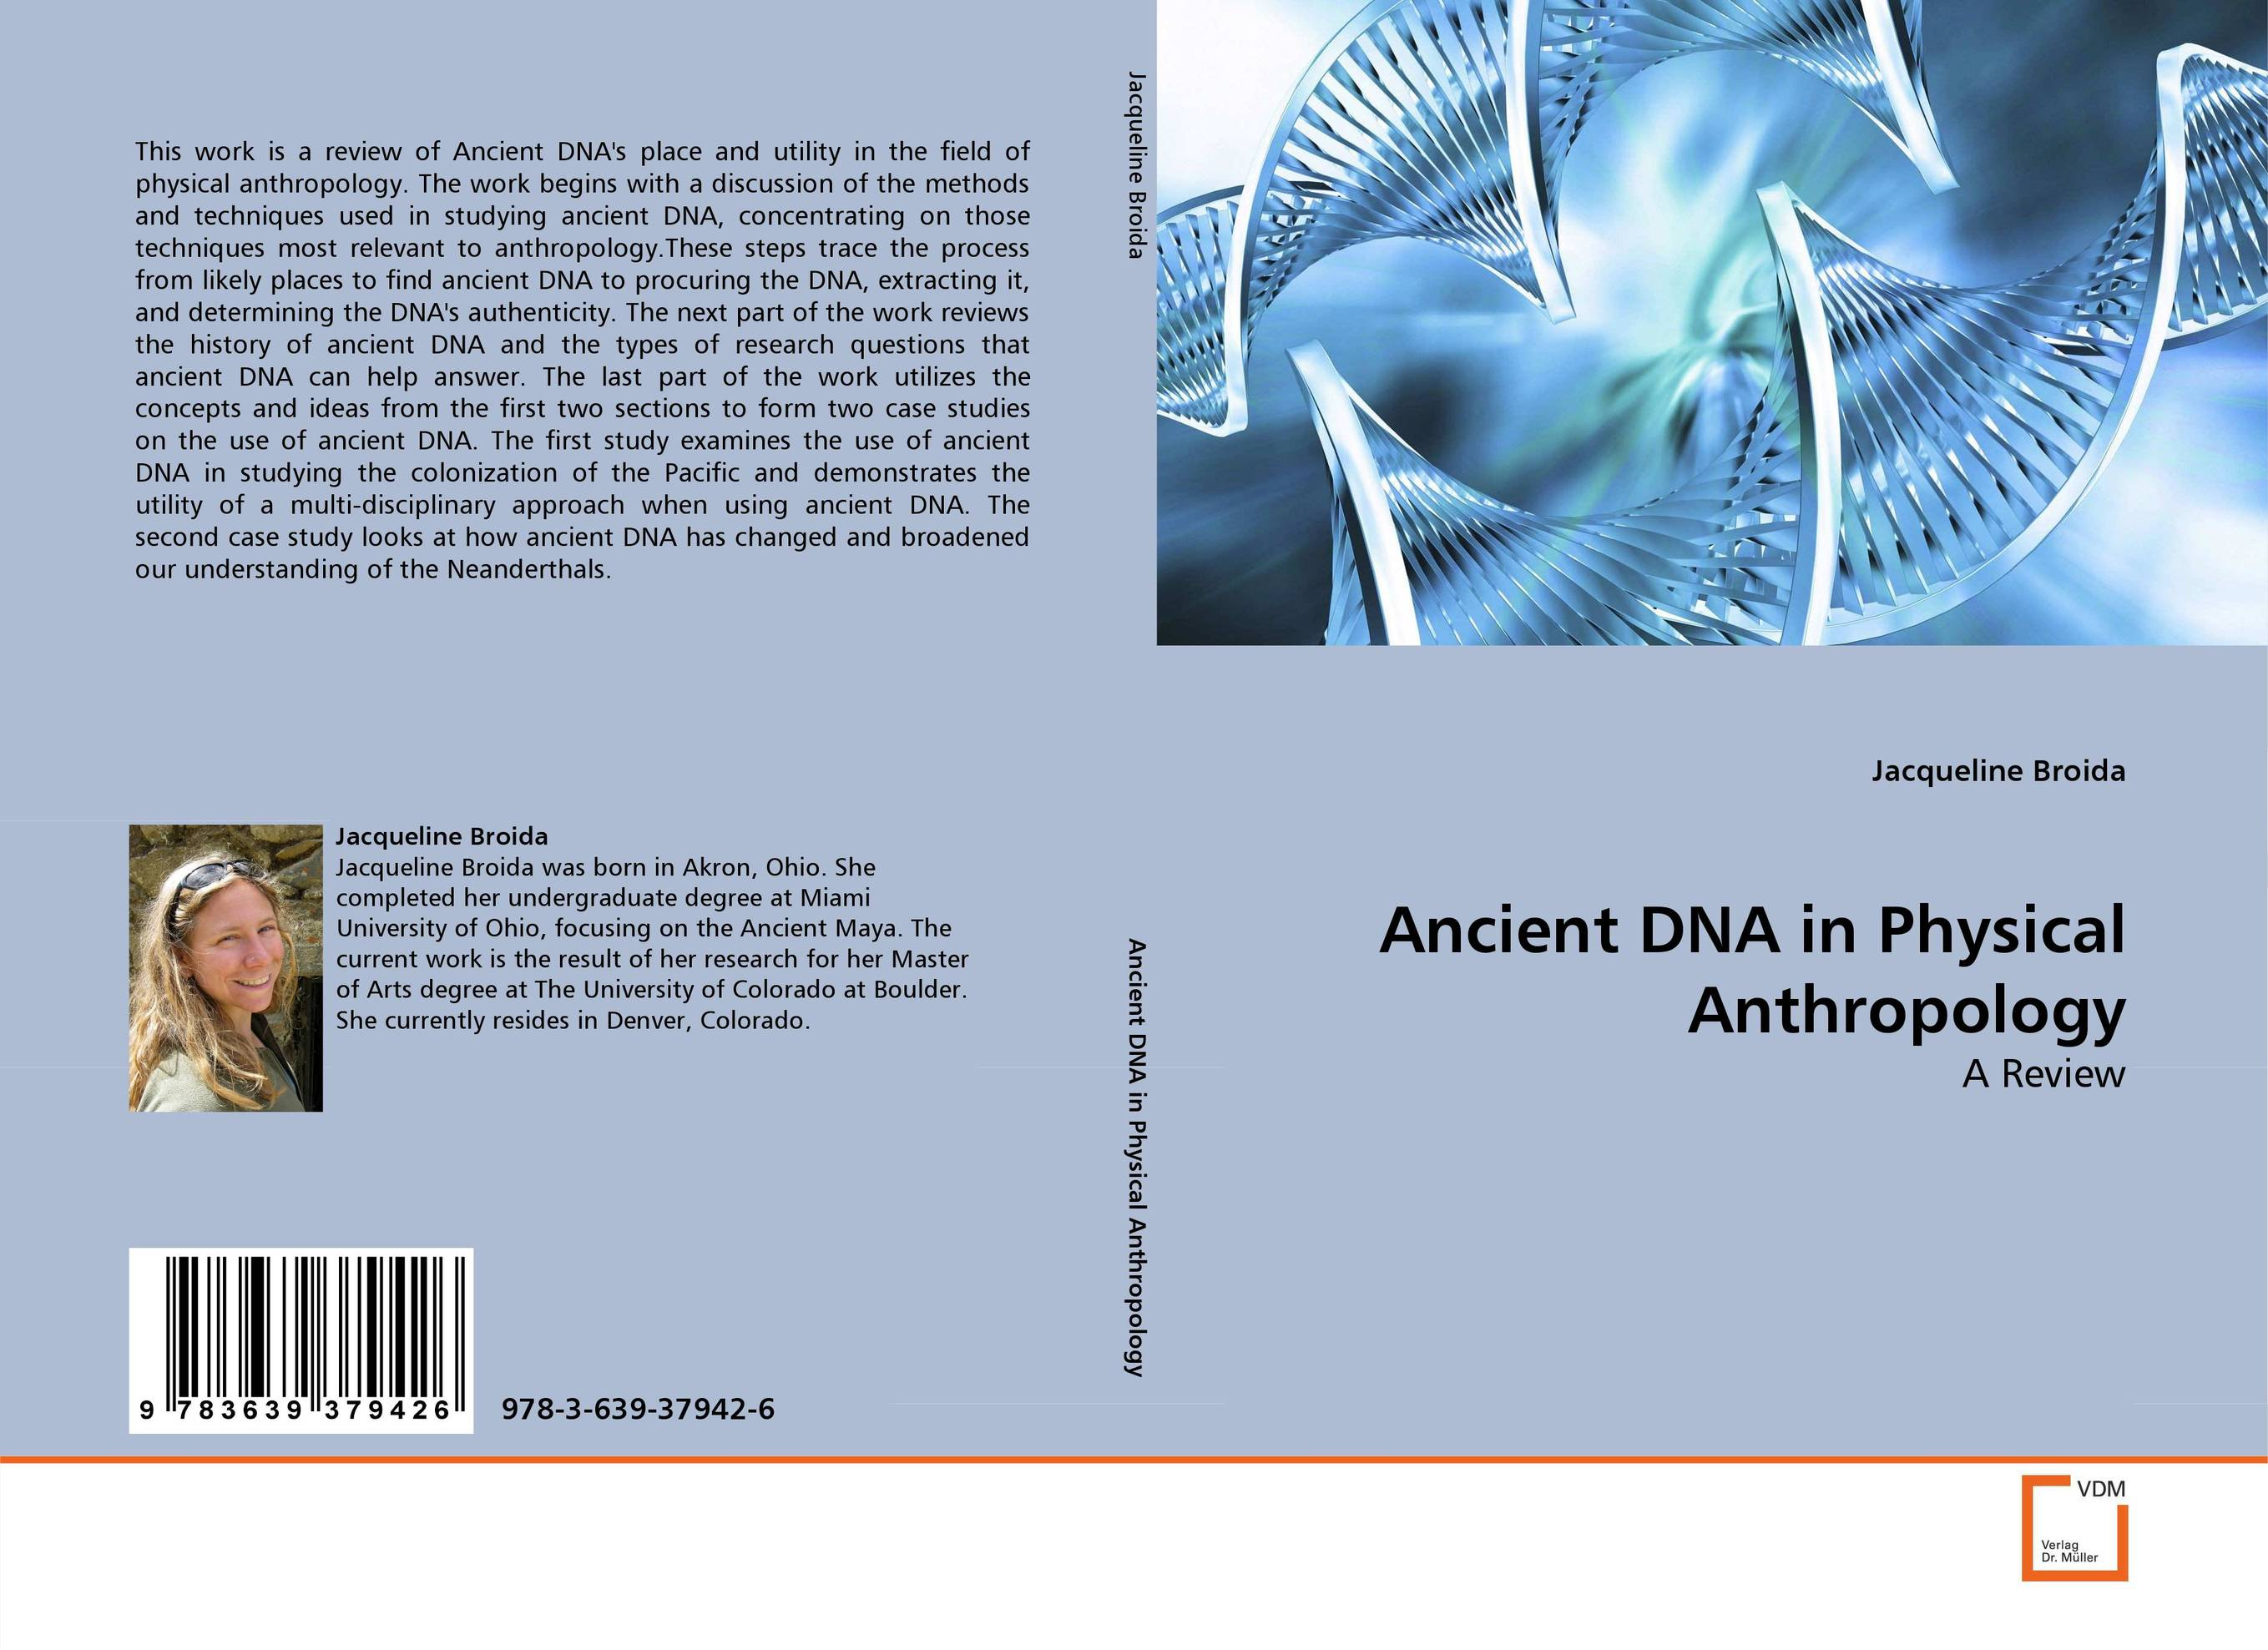 Ancient DNA in Physical Anthropology scientific and mythological ways of knowing in anthropology